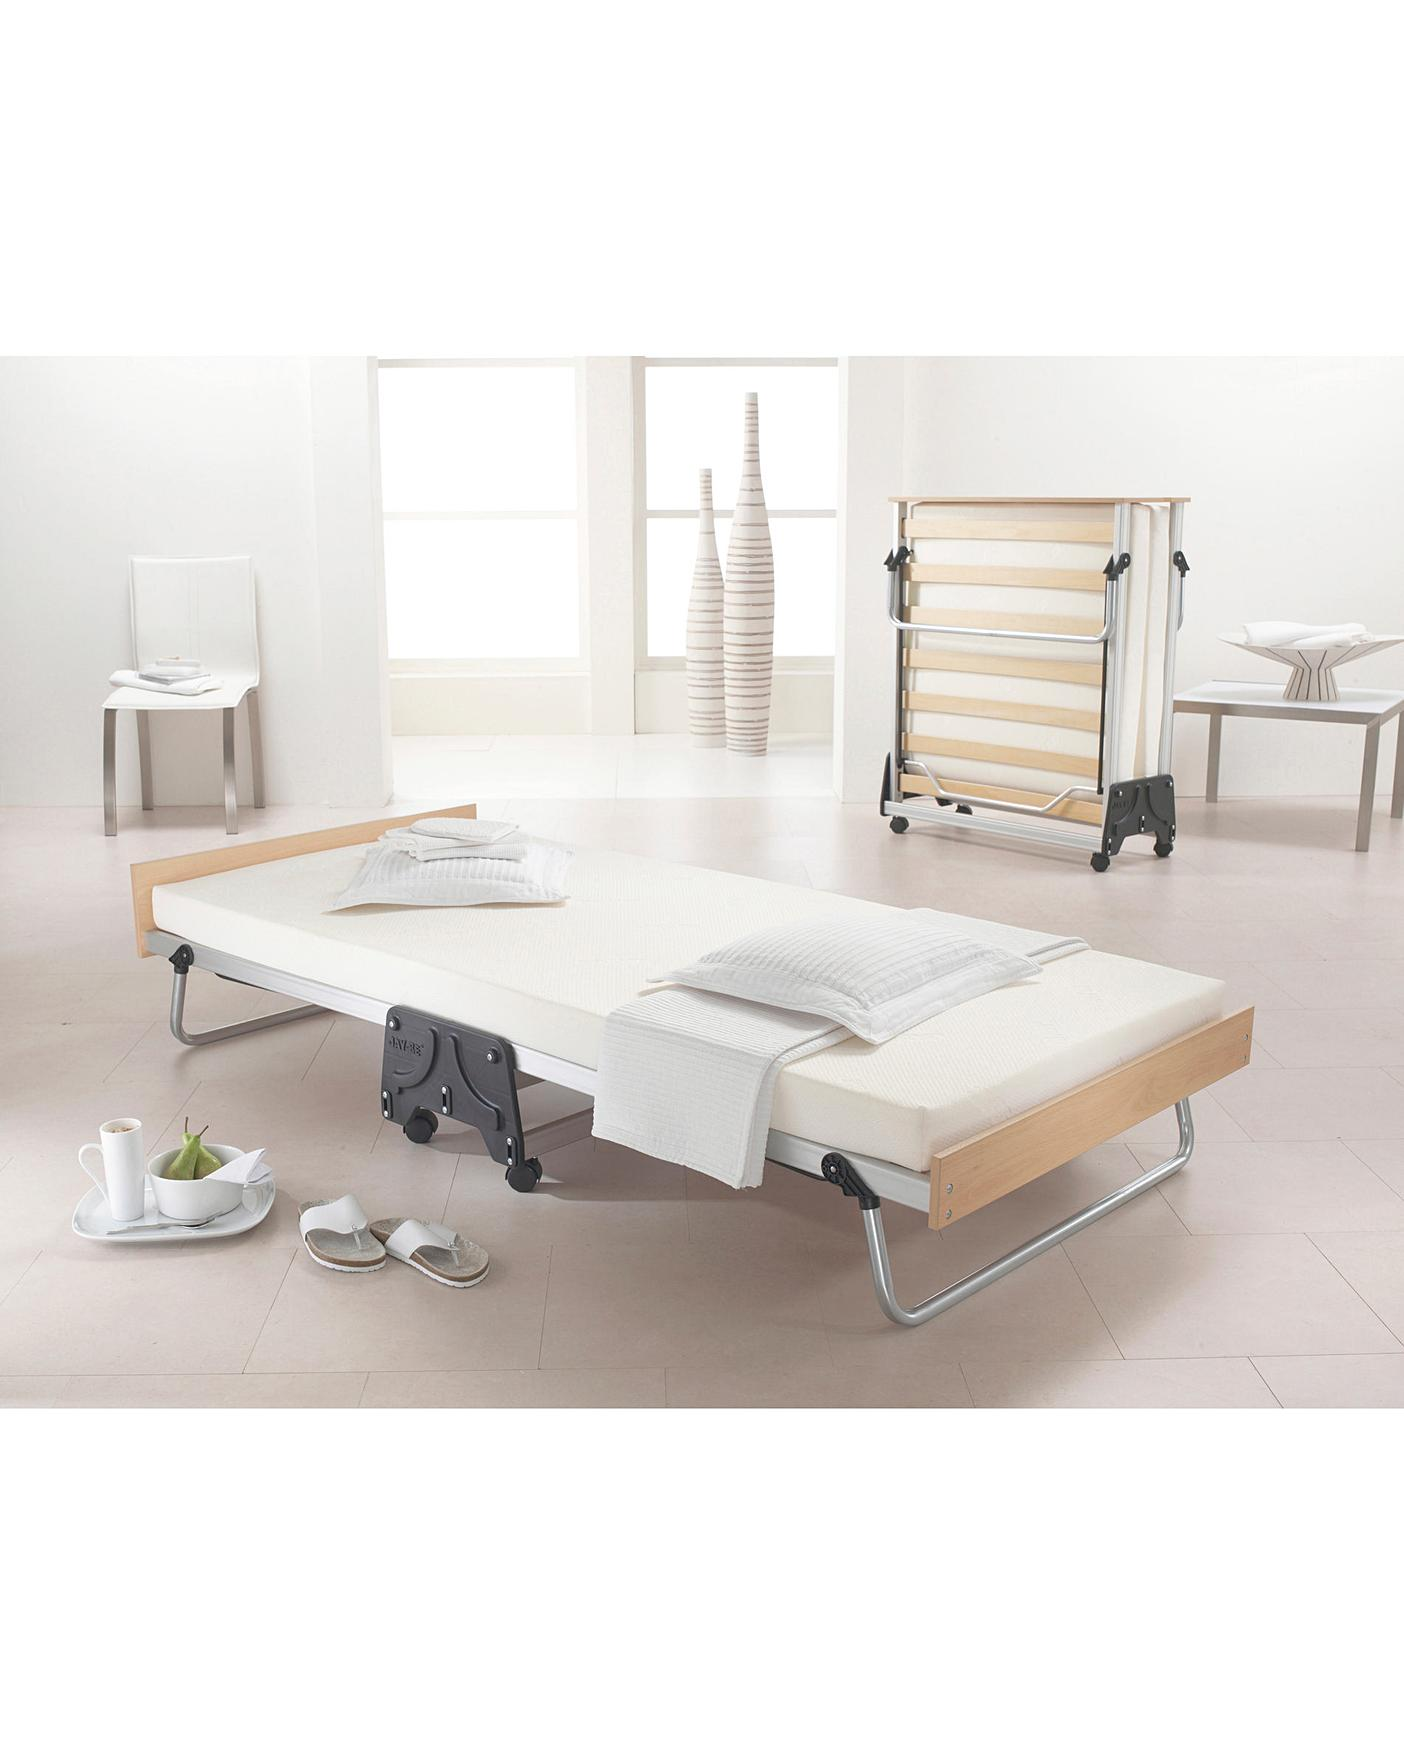 Picture of: J Bed Single Fold Bed Airflow Mattress J D Williams